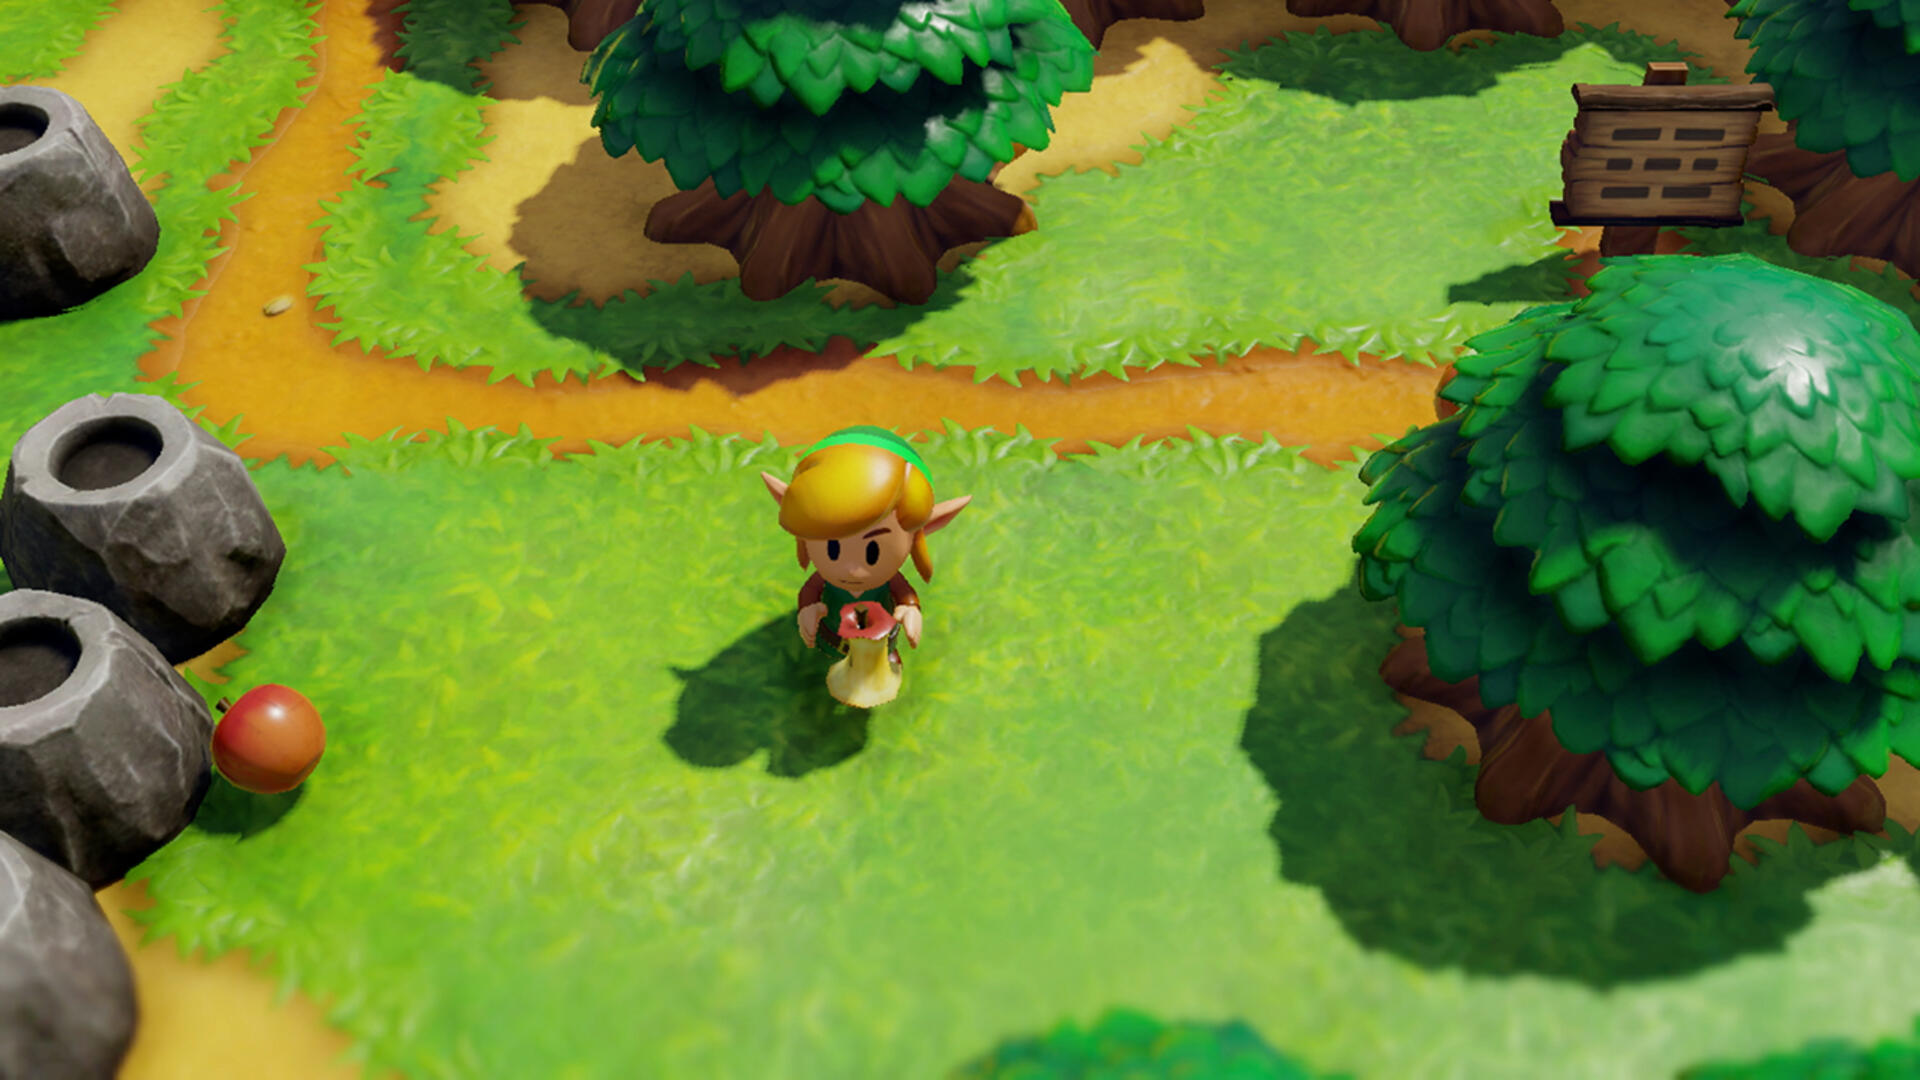 Zelda Link's Awakening Switch Release Date, Gameplay, Amiibo